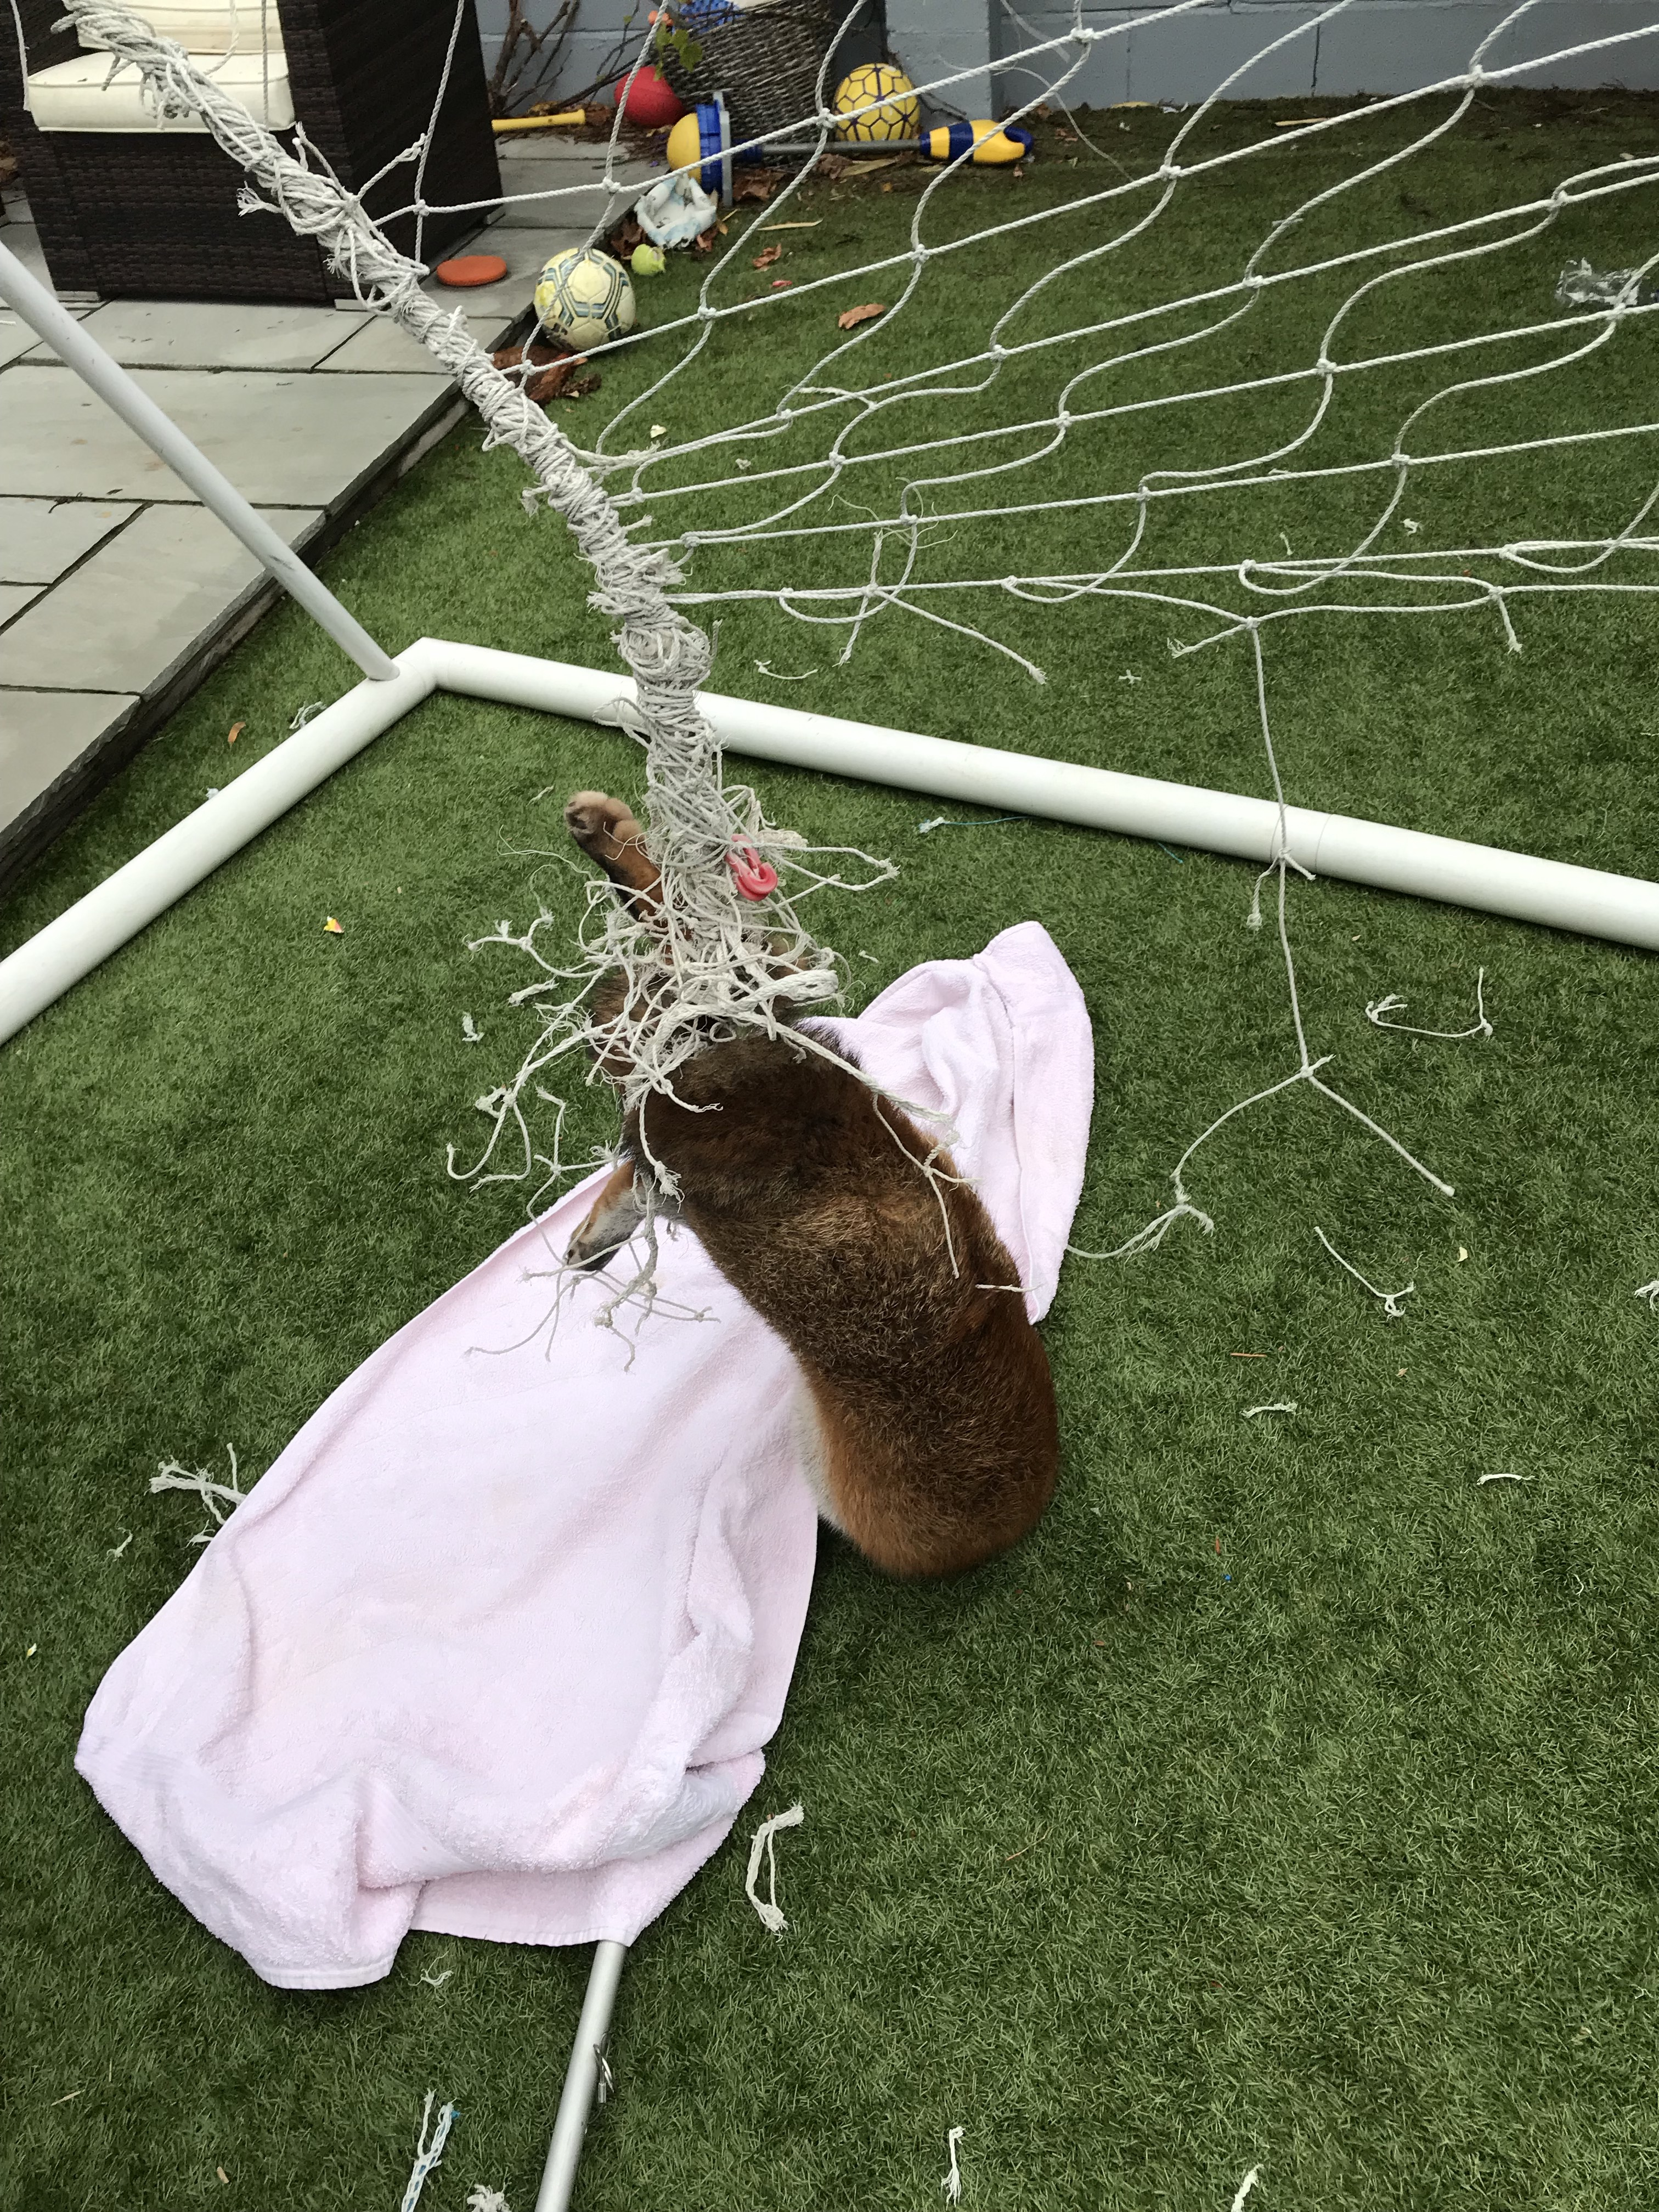 The RSPCA plae a towel over the fox to calm it while cutting away the netting it was trapped in